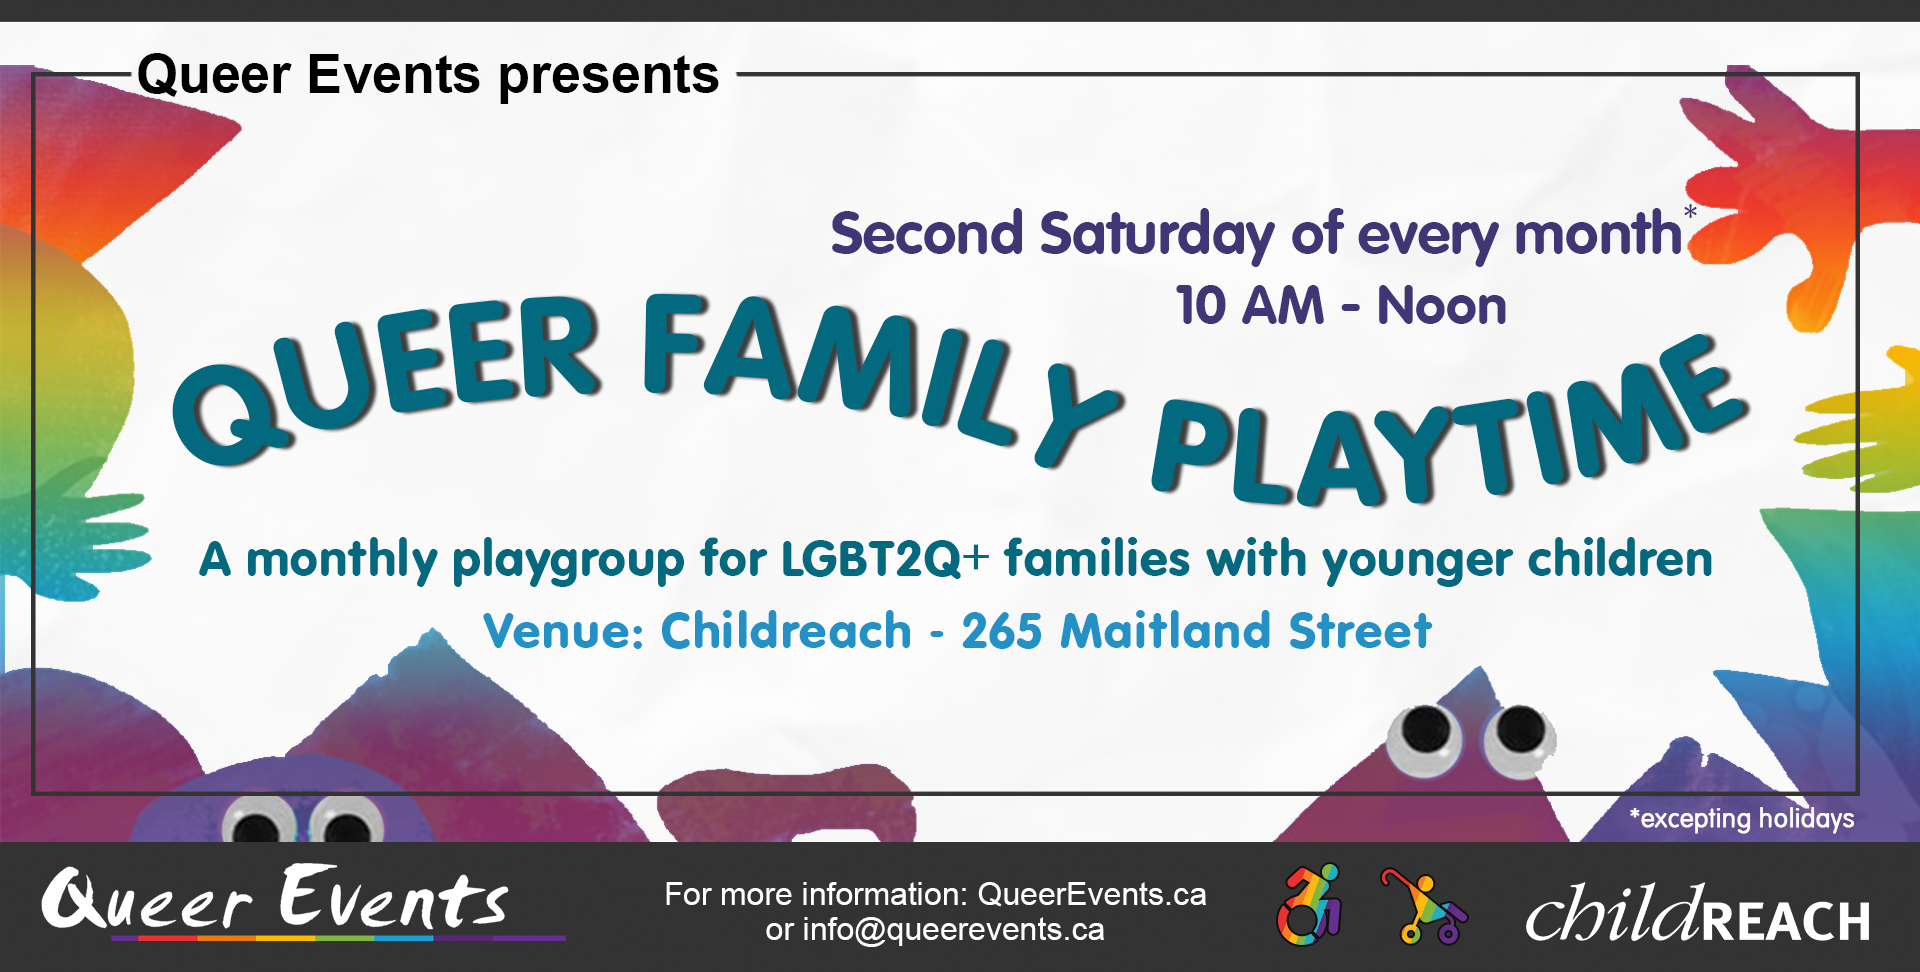 QueerEvents.ca - event listing - Queer family playtime banner